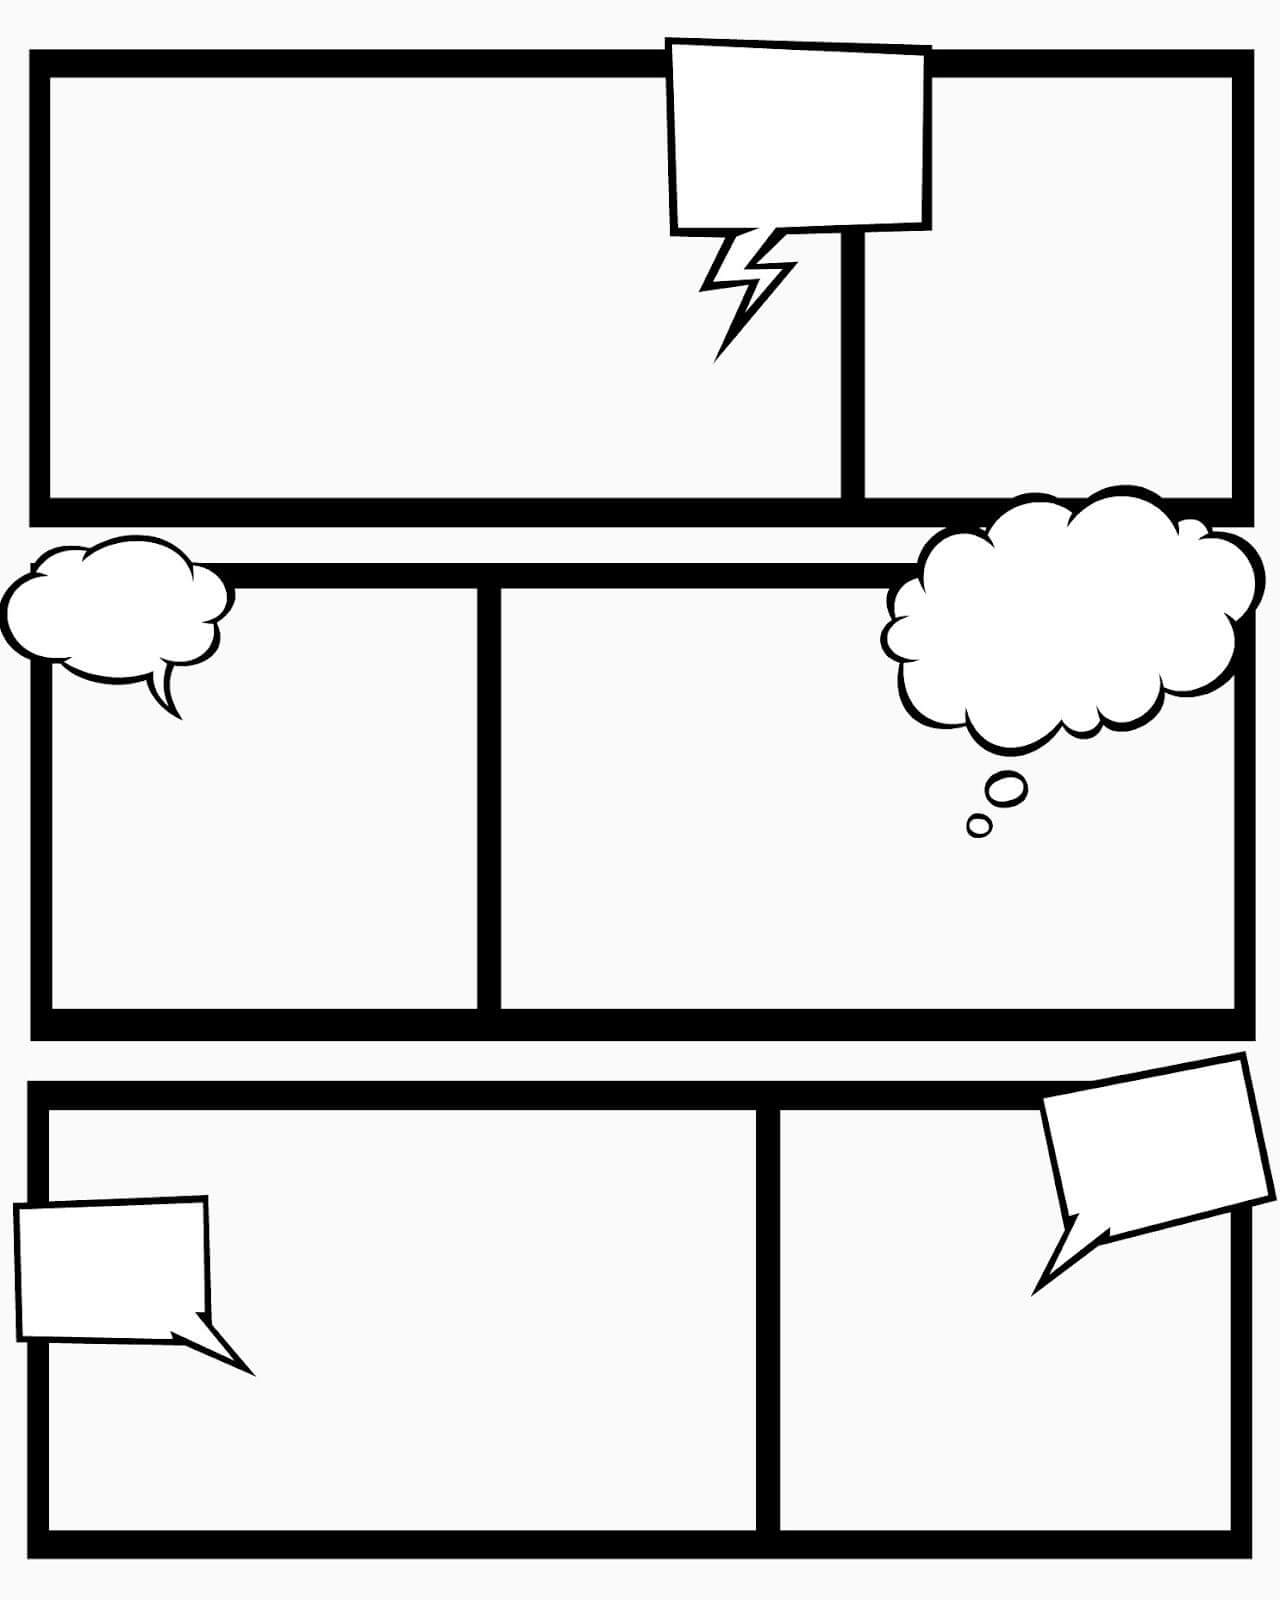 Sweet Hot Mess: Free Printable Comic Book Templates - And Inside Printable Blank Comic Strip Template For Kids